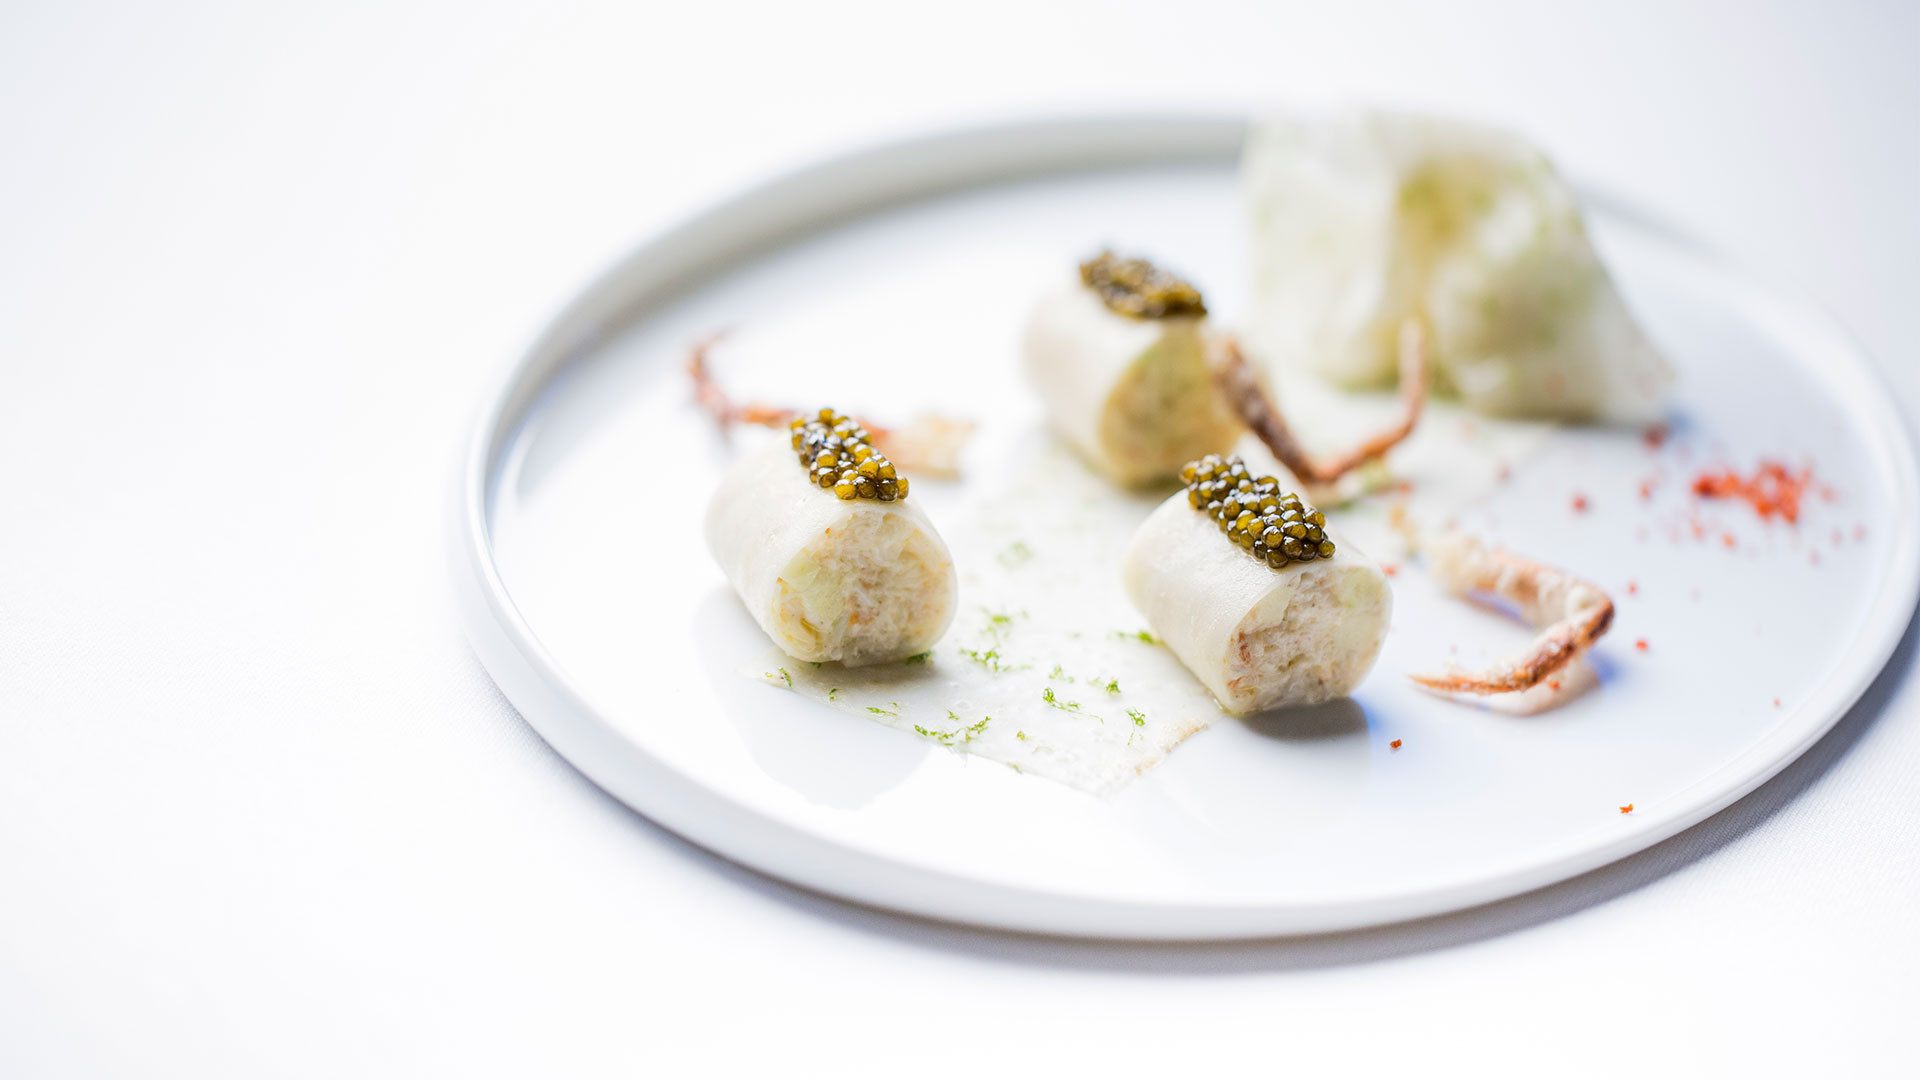 Dishes from the tasting menu at Alain Ducasse at the Dorchester